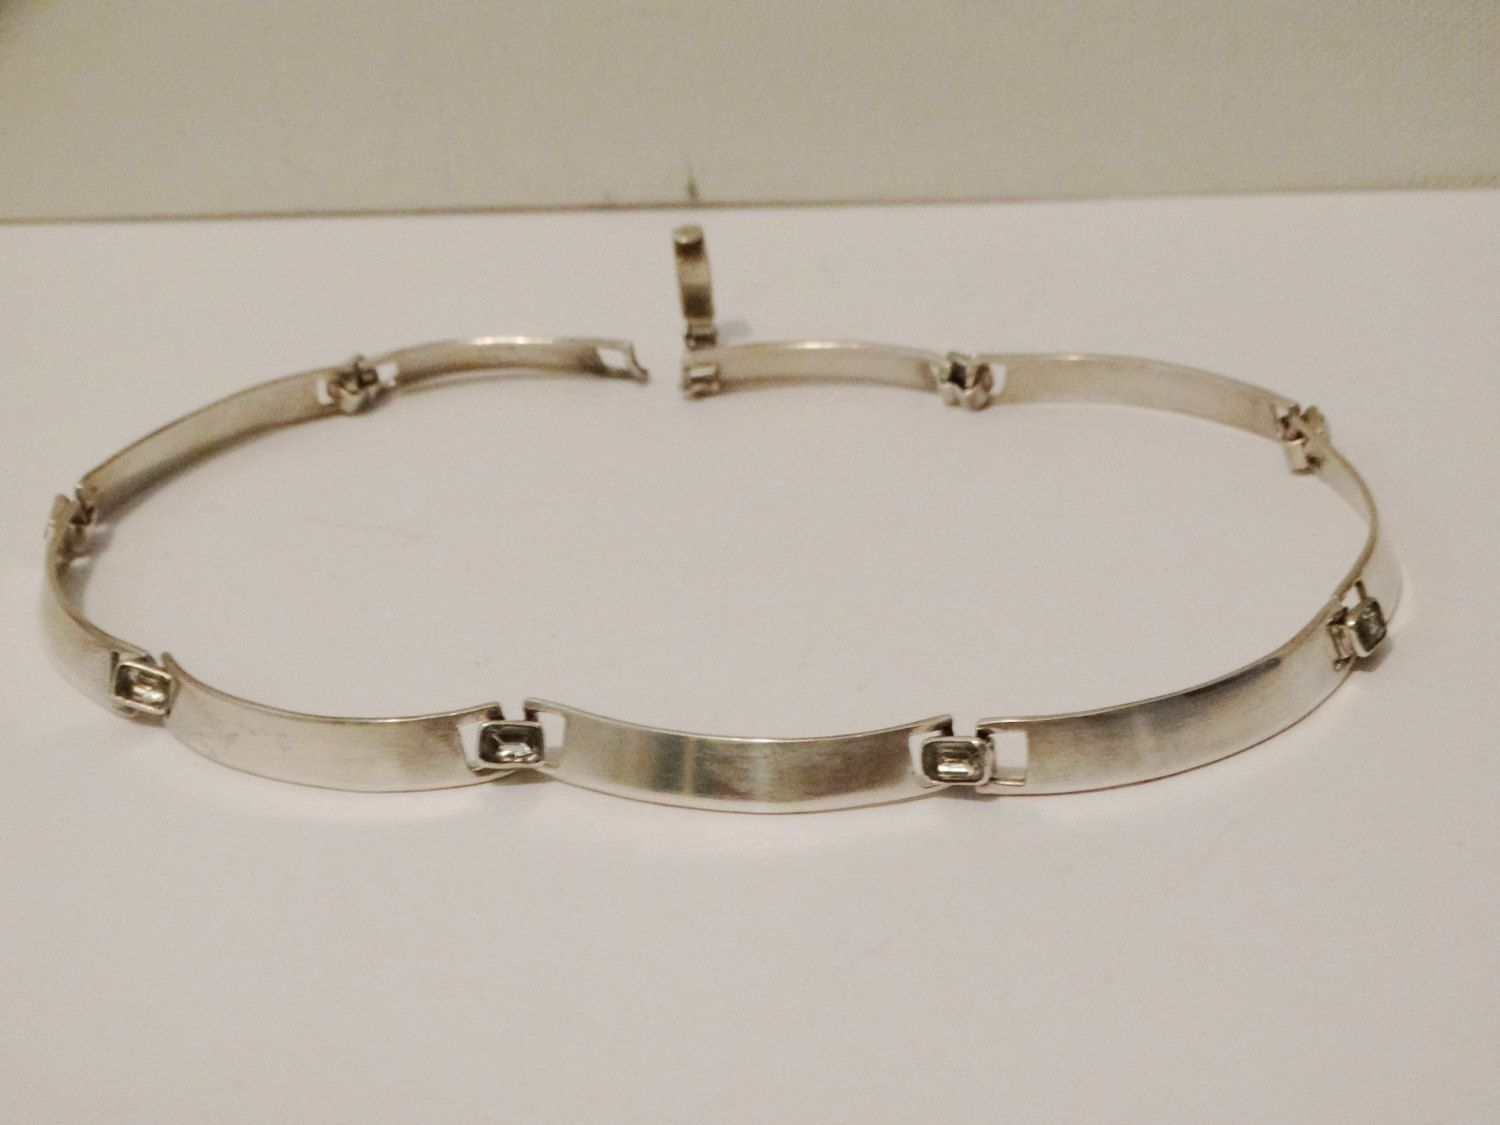 Solid Sterling Silver Choker Necklace With Clear Stones